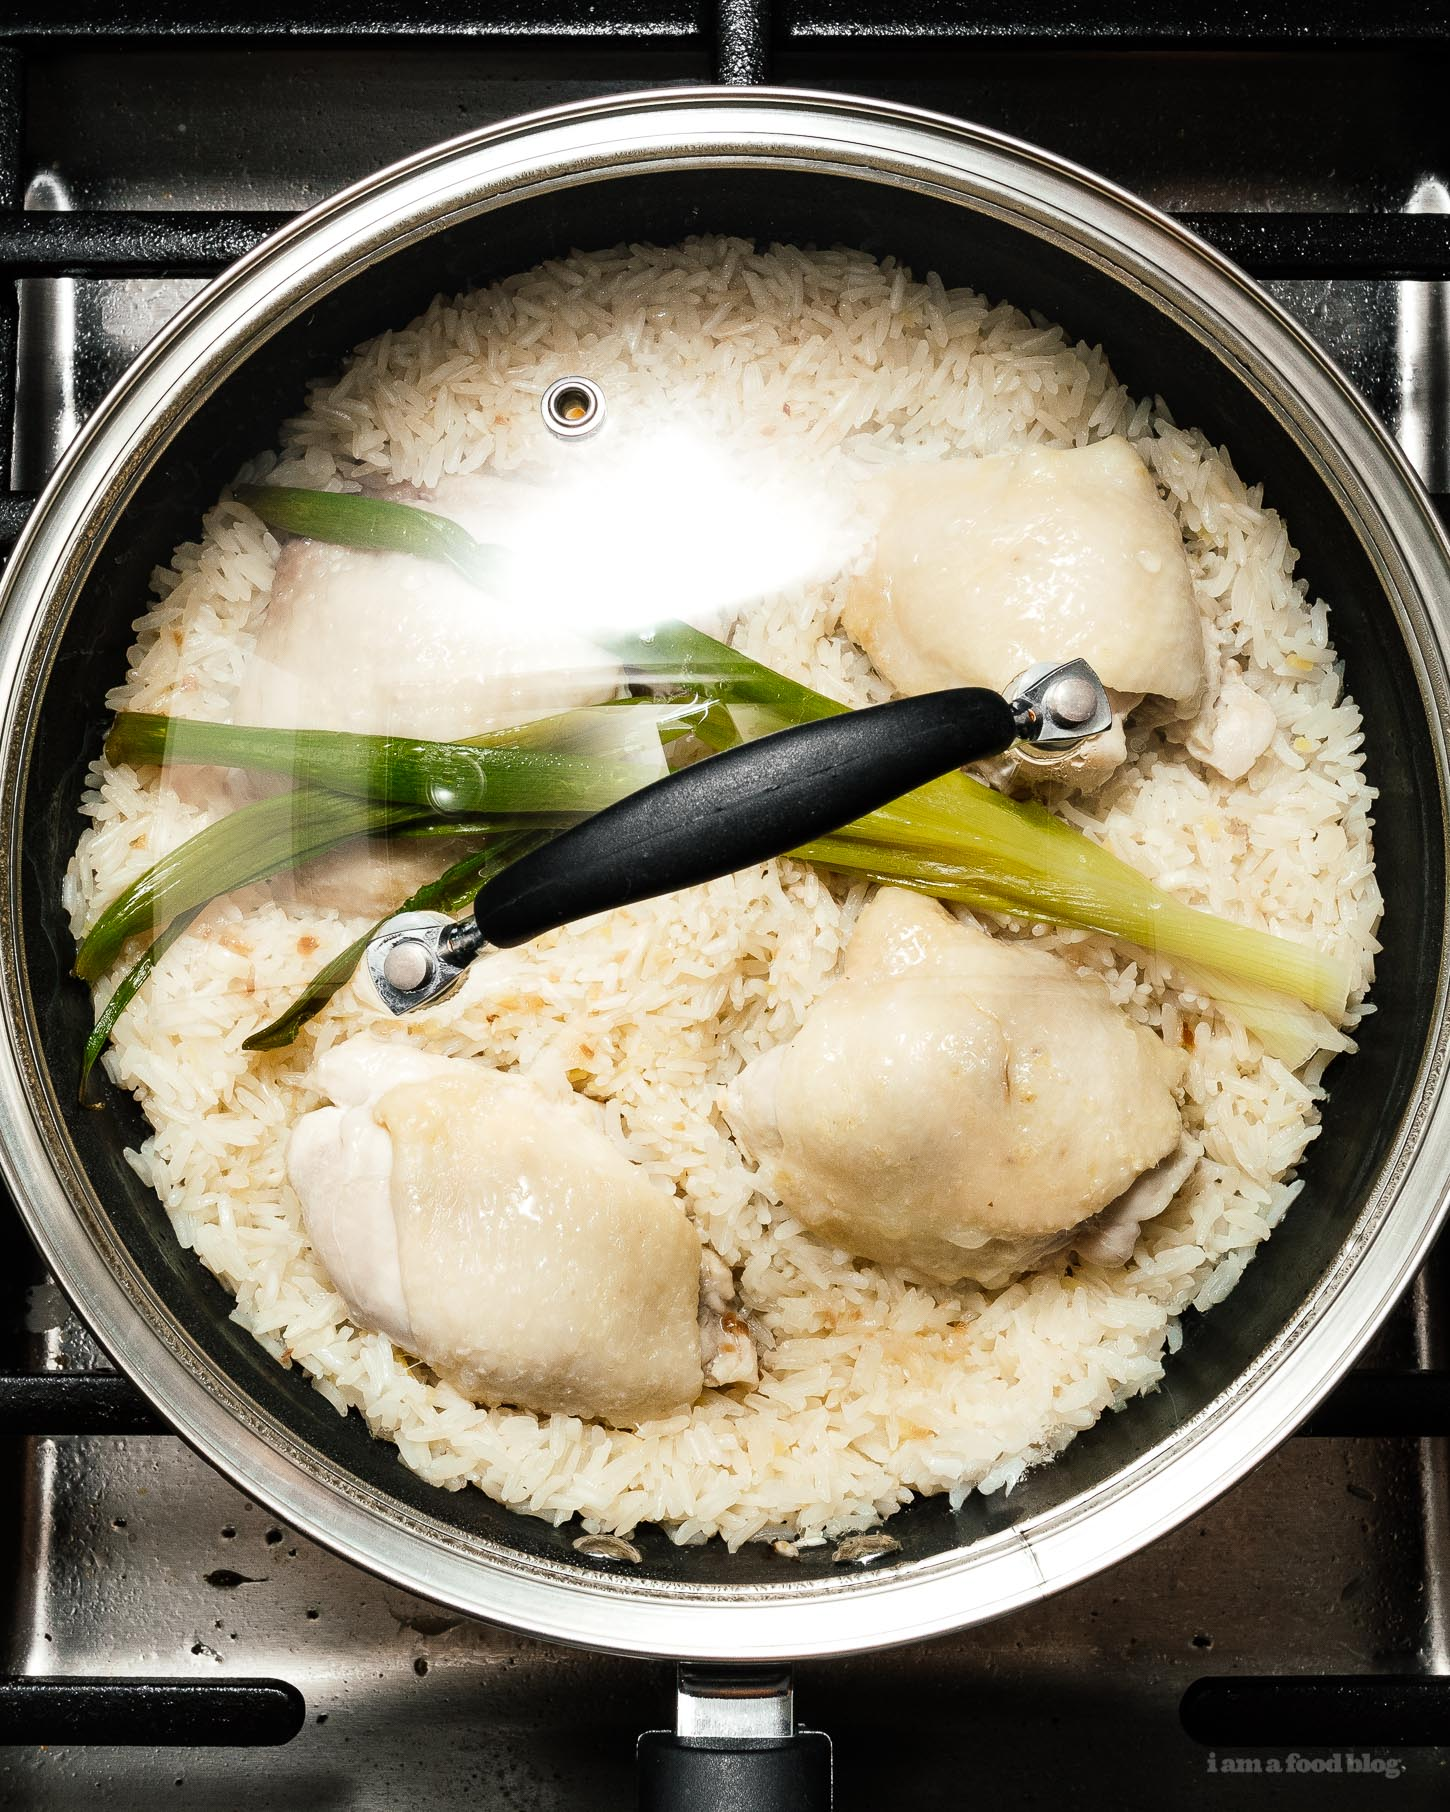 Super simple and satisfying Hainanese chicken rice: juicy steamed chicken and ginger garlic rice cooked in the same pot. It's what you want for dinner, right now! #hainanesechickenrice #chickenrice #recipes #dinner #onepot #easy #chickenrecipe #rice #chickenandrice